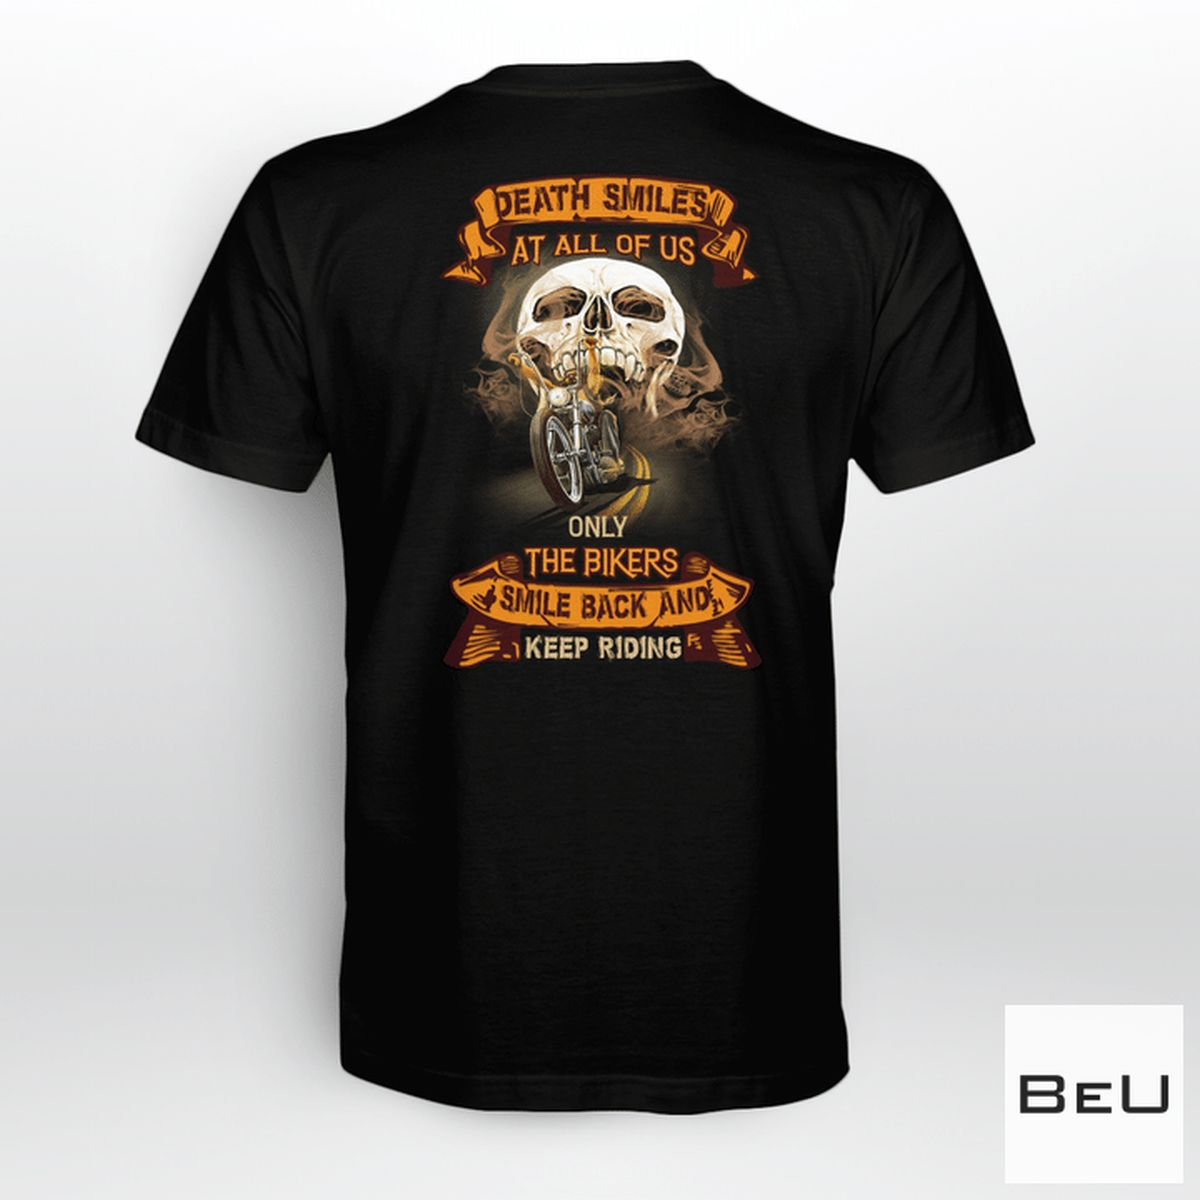 Death Smile At All Of Us Ghost Rider Shirt, hoodie